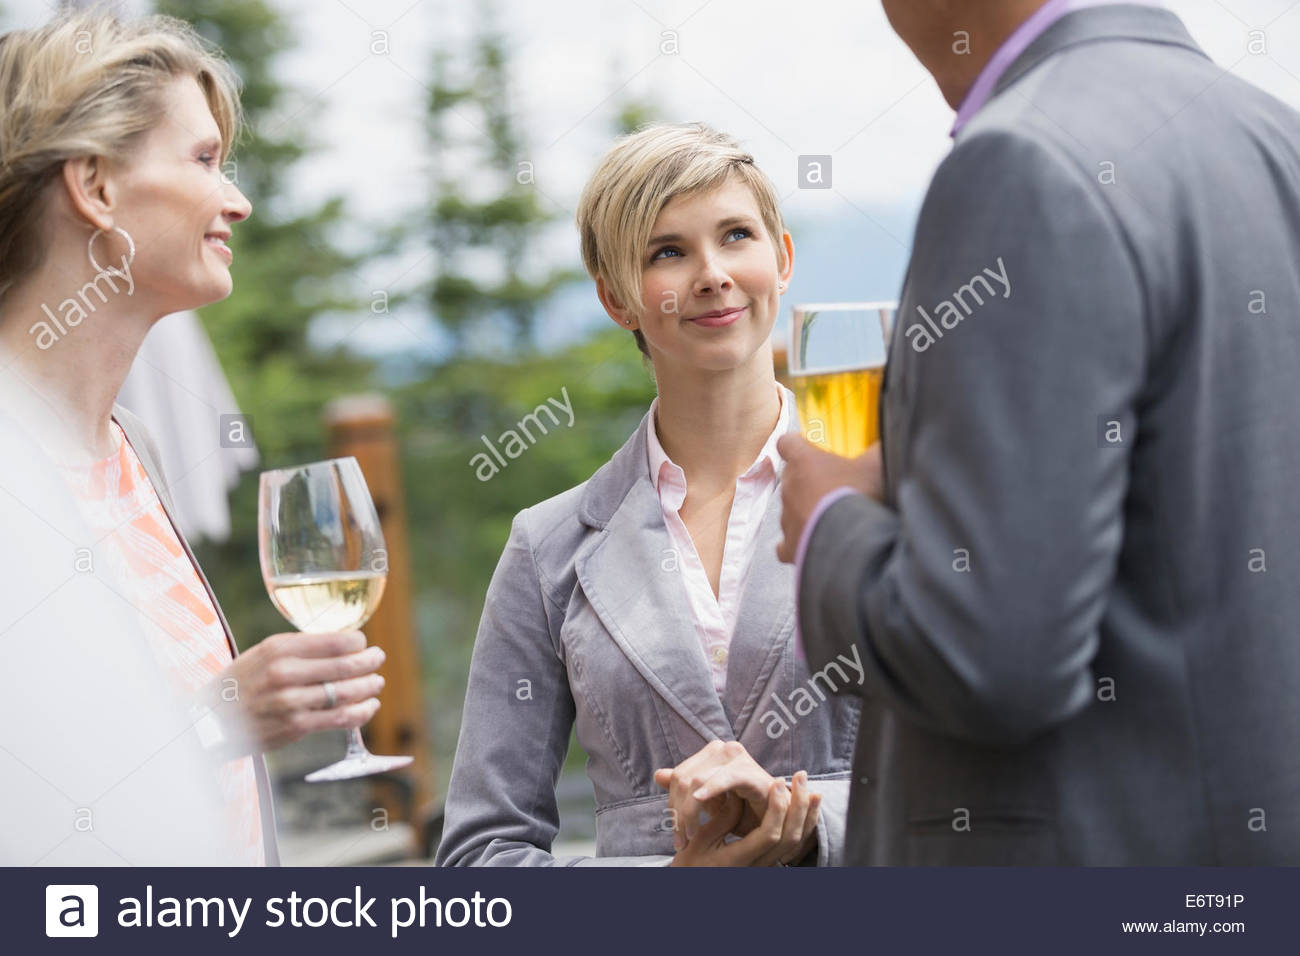 Business people talking at networking event - Stock Image